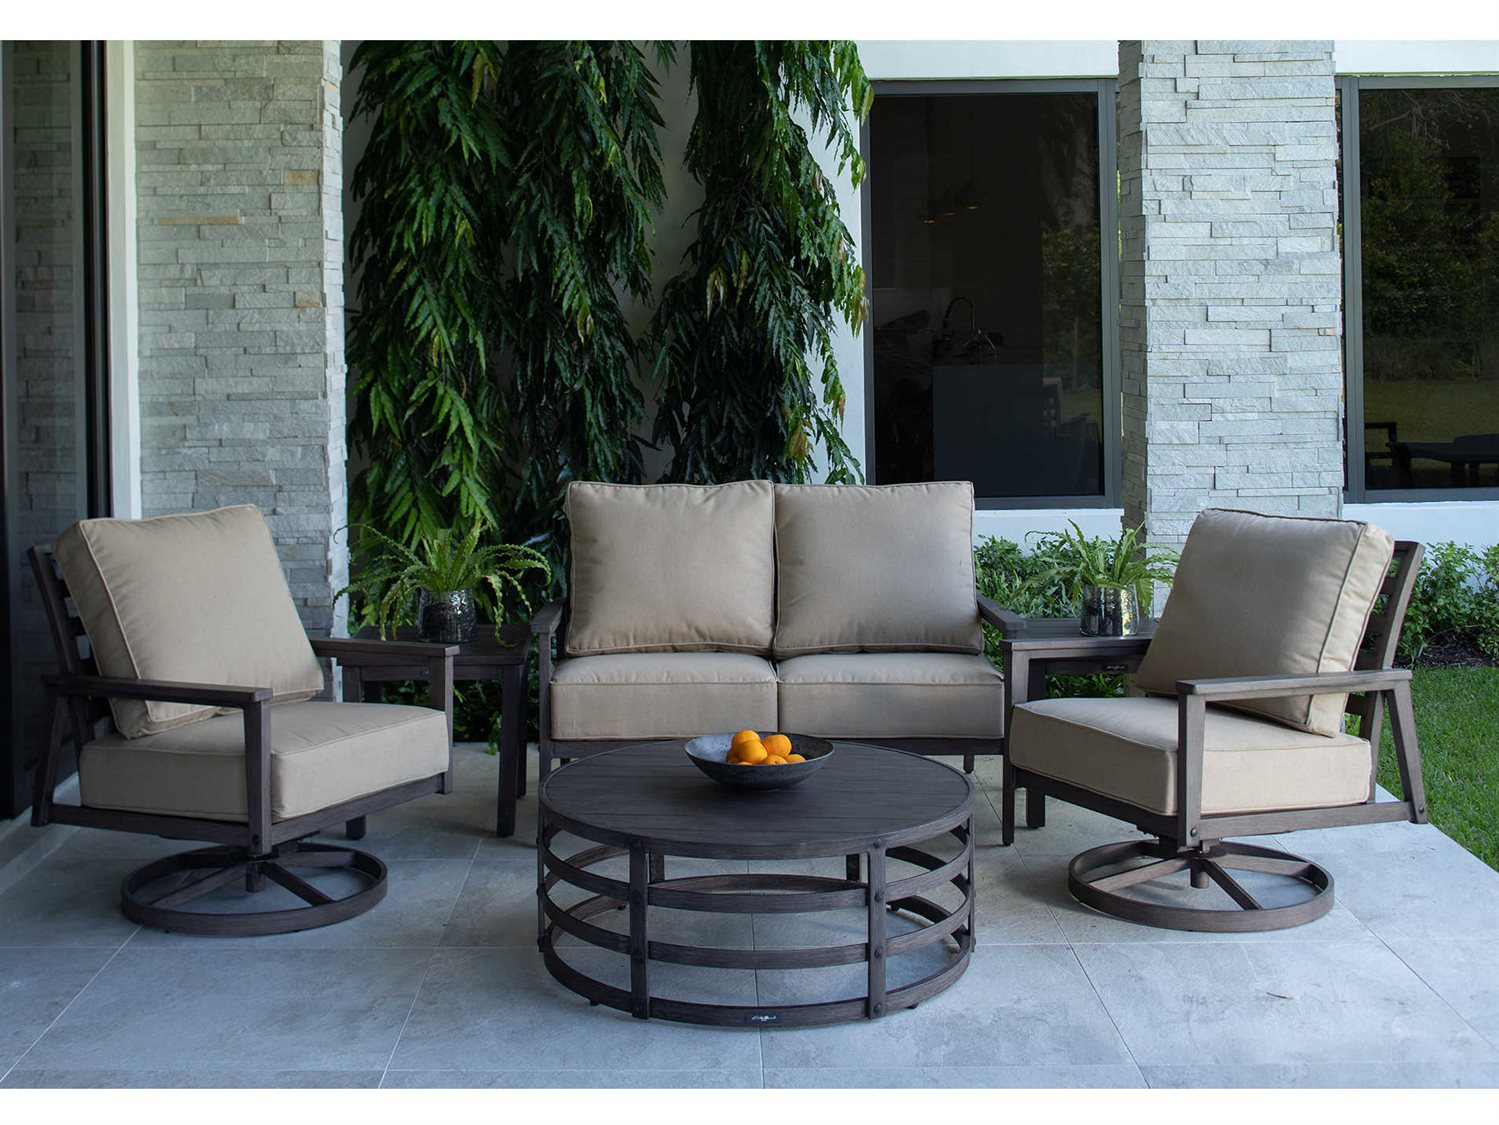 Eddie Bauer Horizon Faux Aged Teak Aluminum Cushion Lounge Set